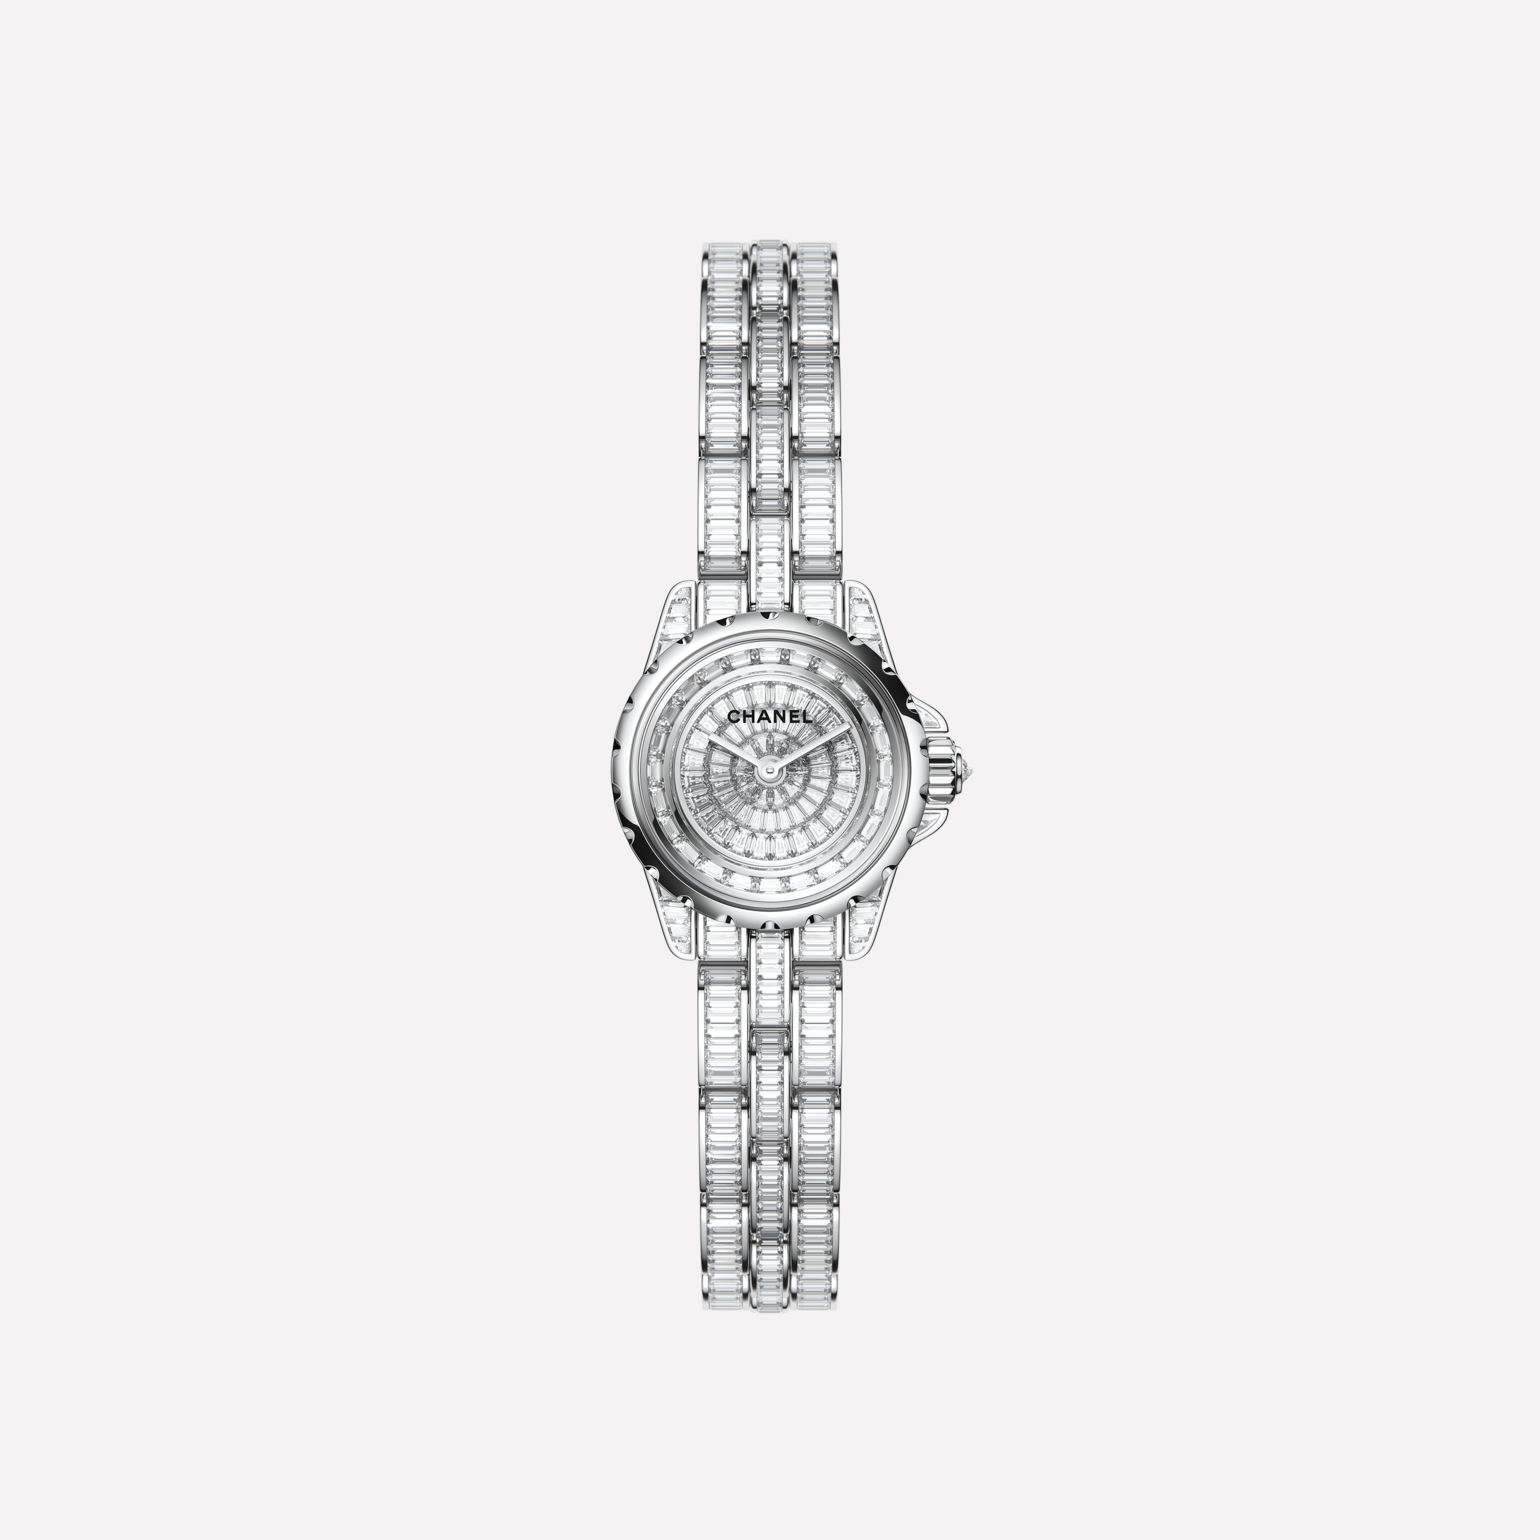 J12·XS High Jewelry Watch, 19 mm White gold, case, dial, flange, and bracelet set with baguette-cut diamonds